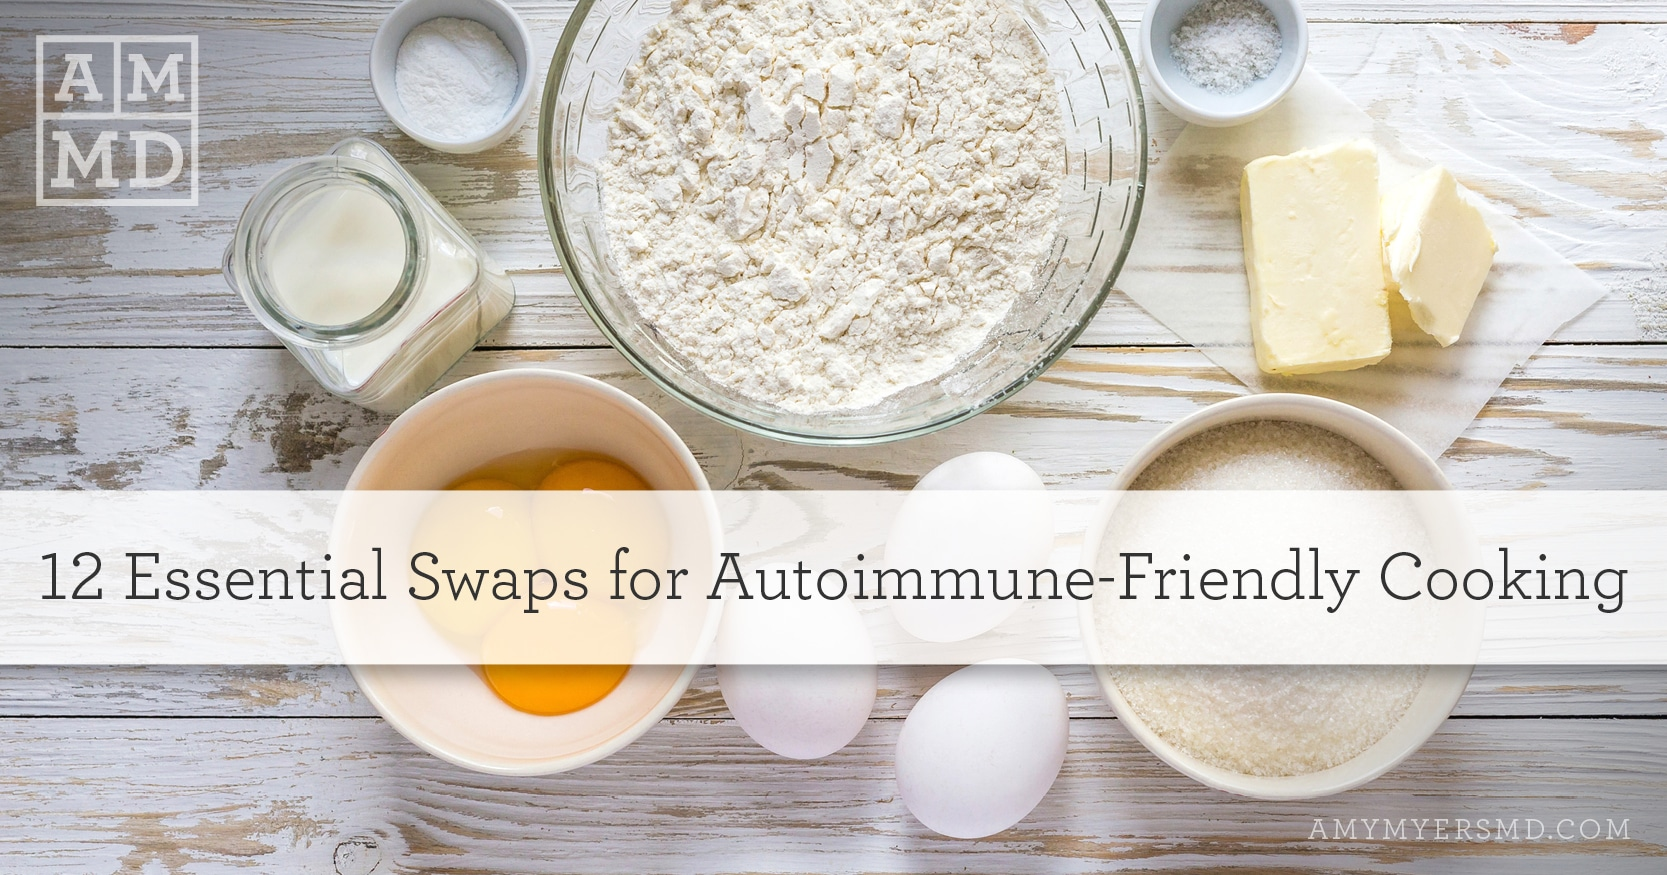 autoimmune-friendly cooking